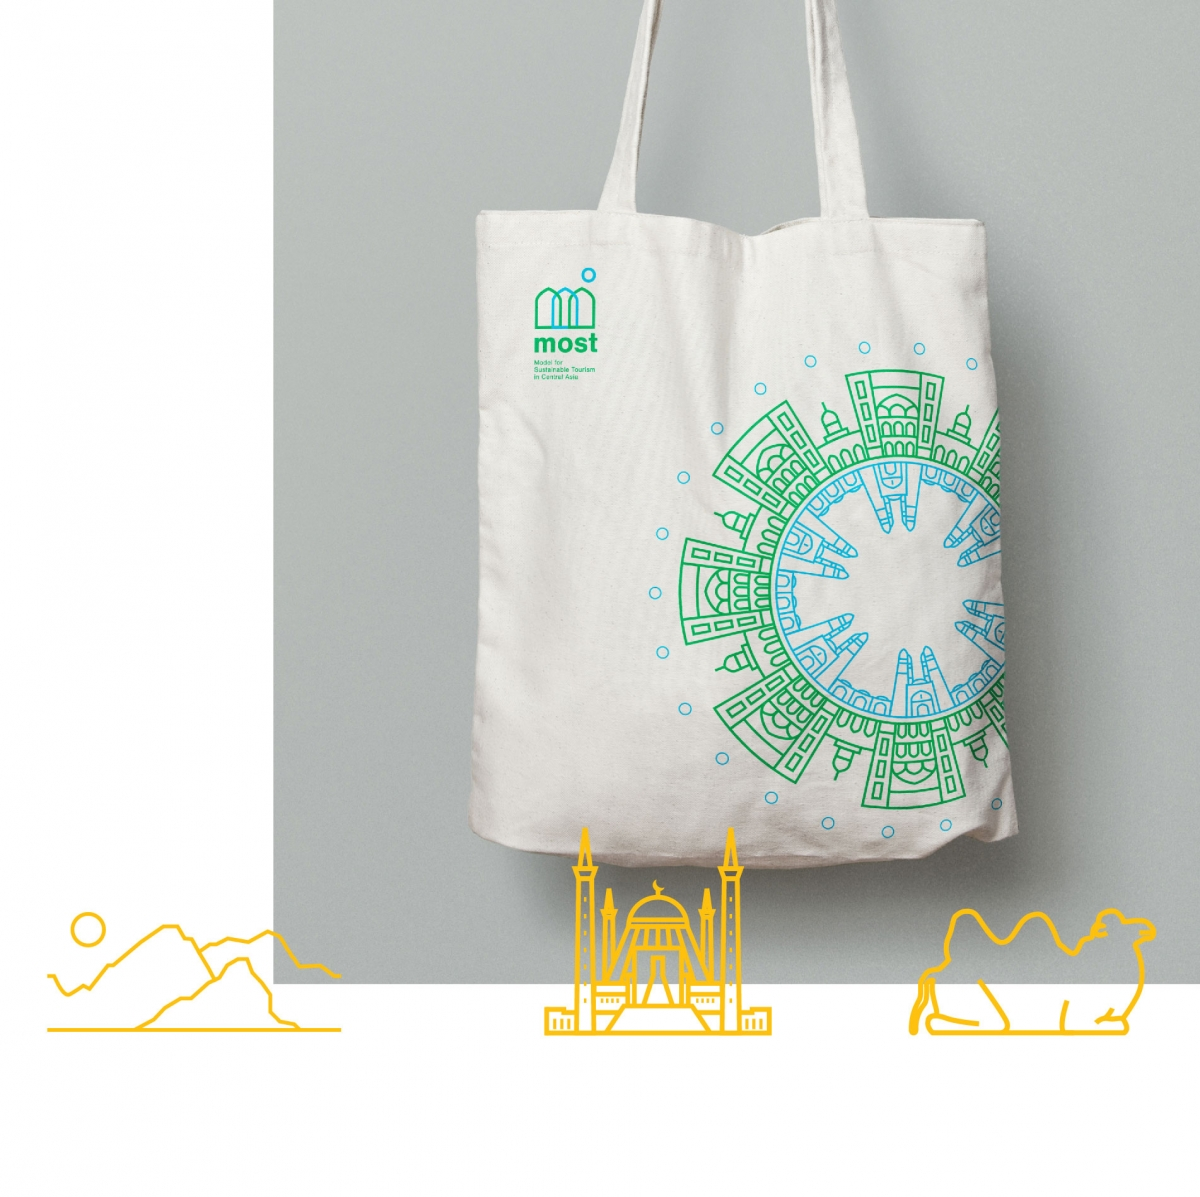 most tote bag with details